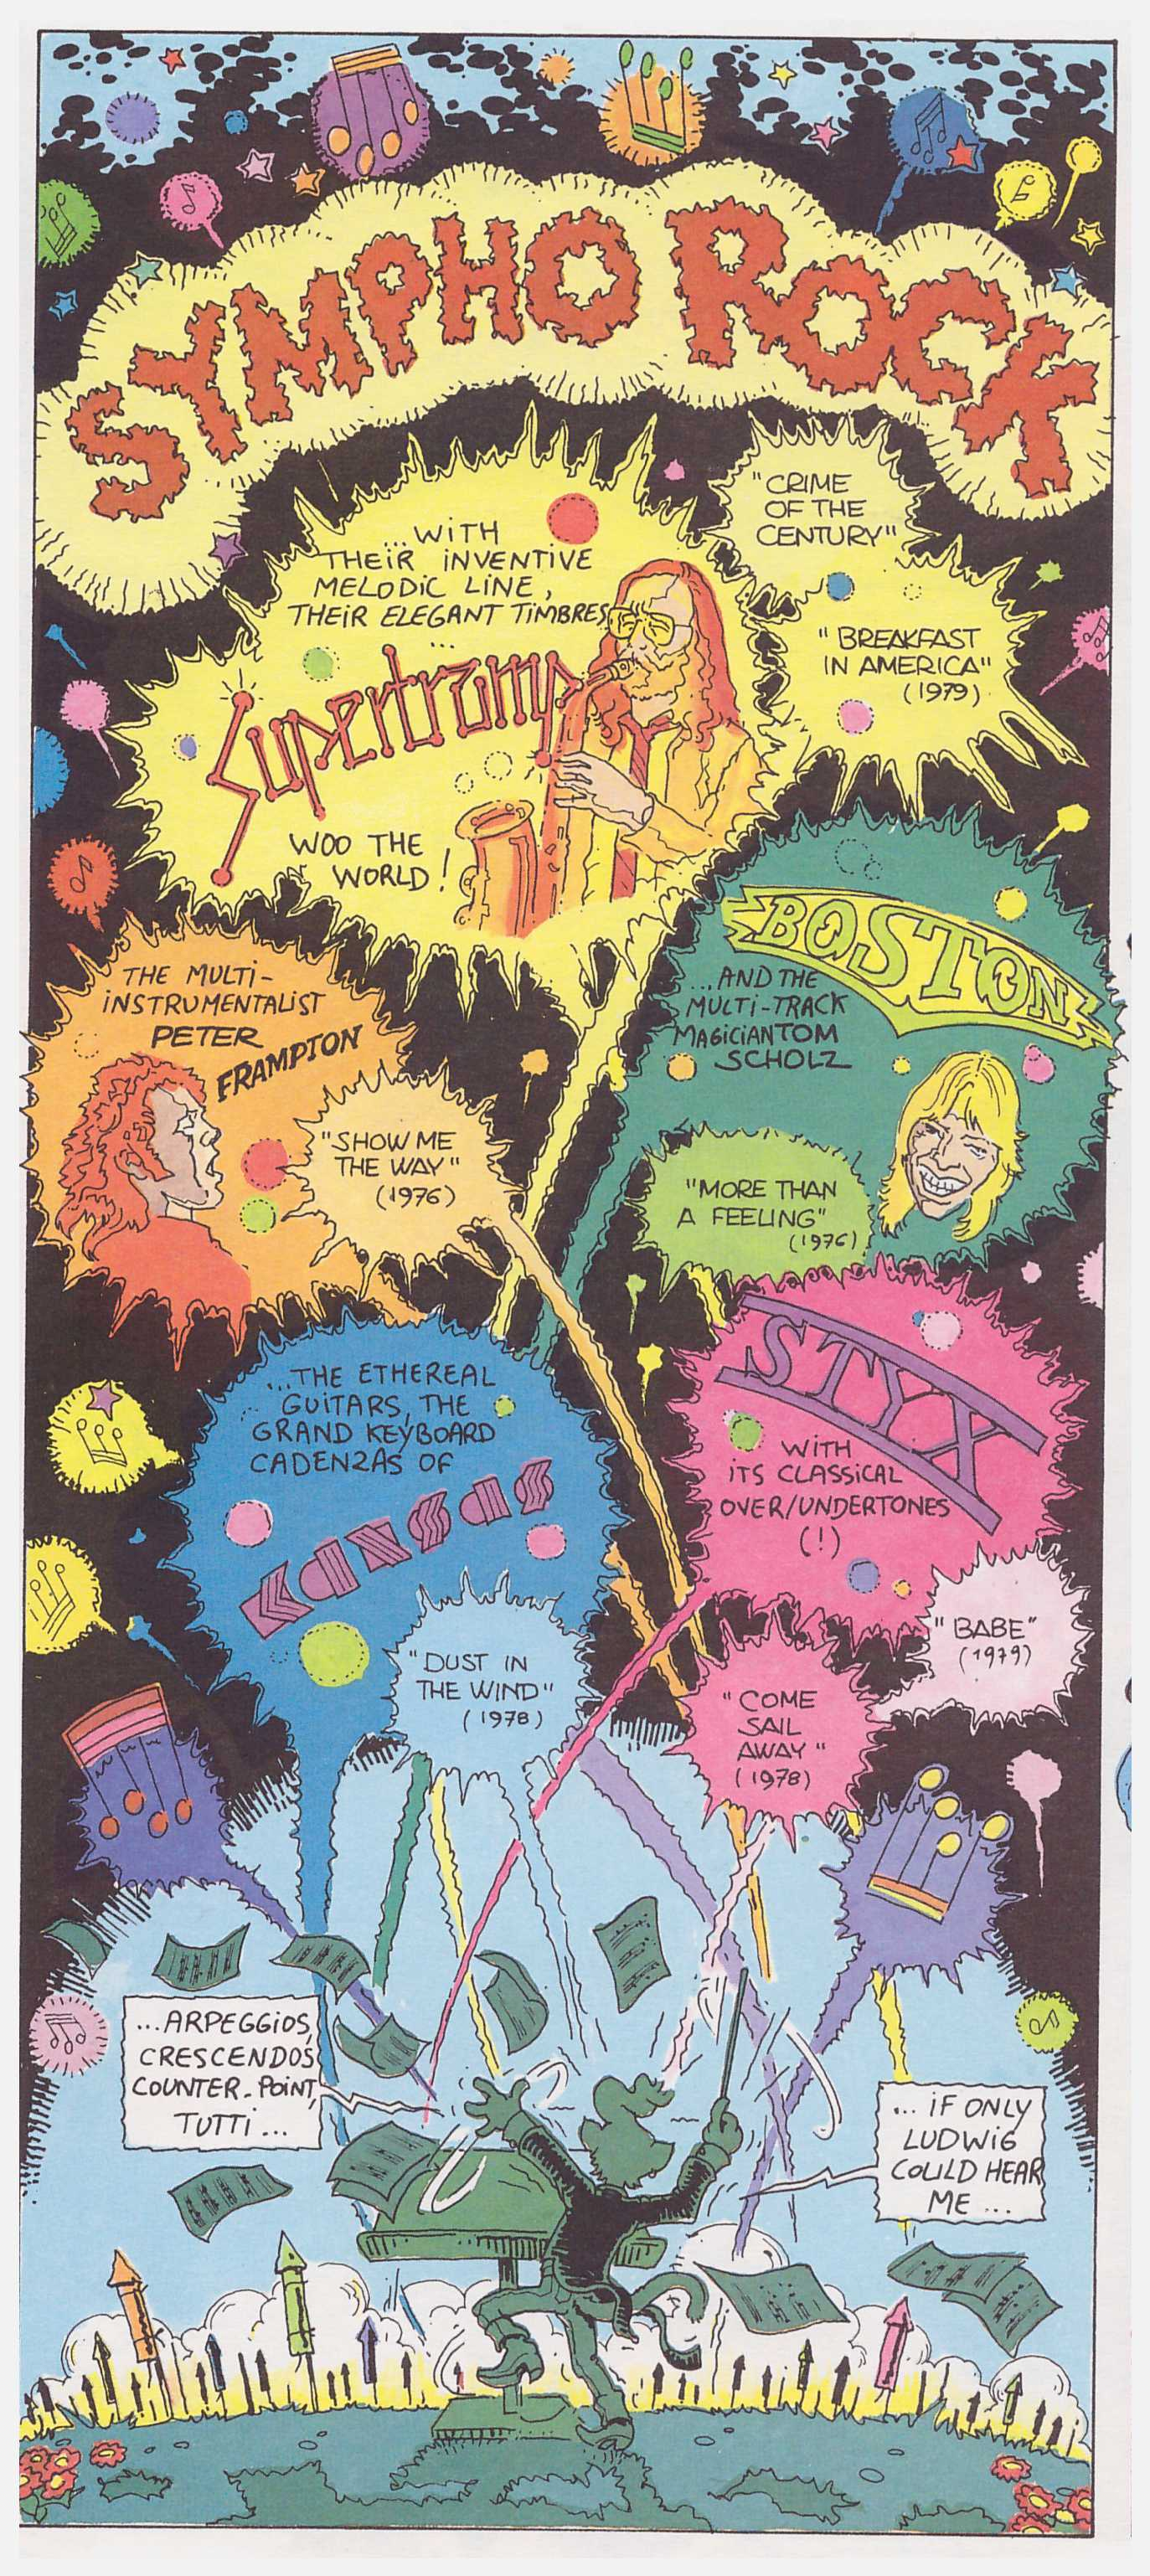 The Cartoon History of Rock and Roll review